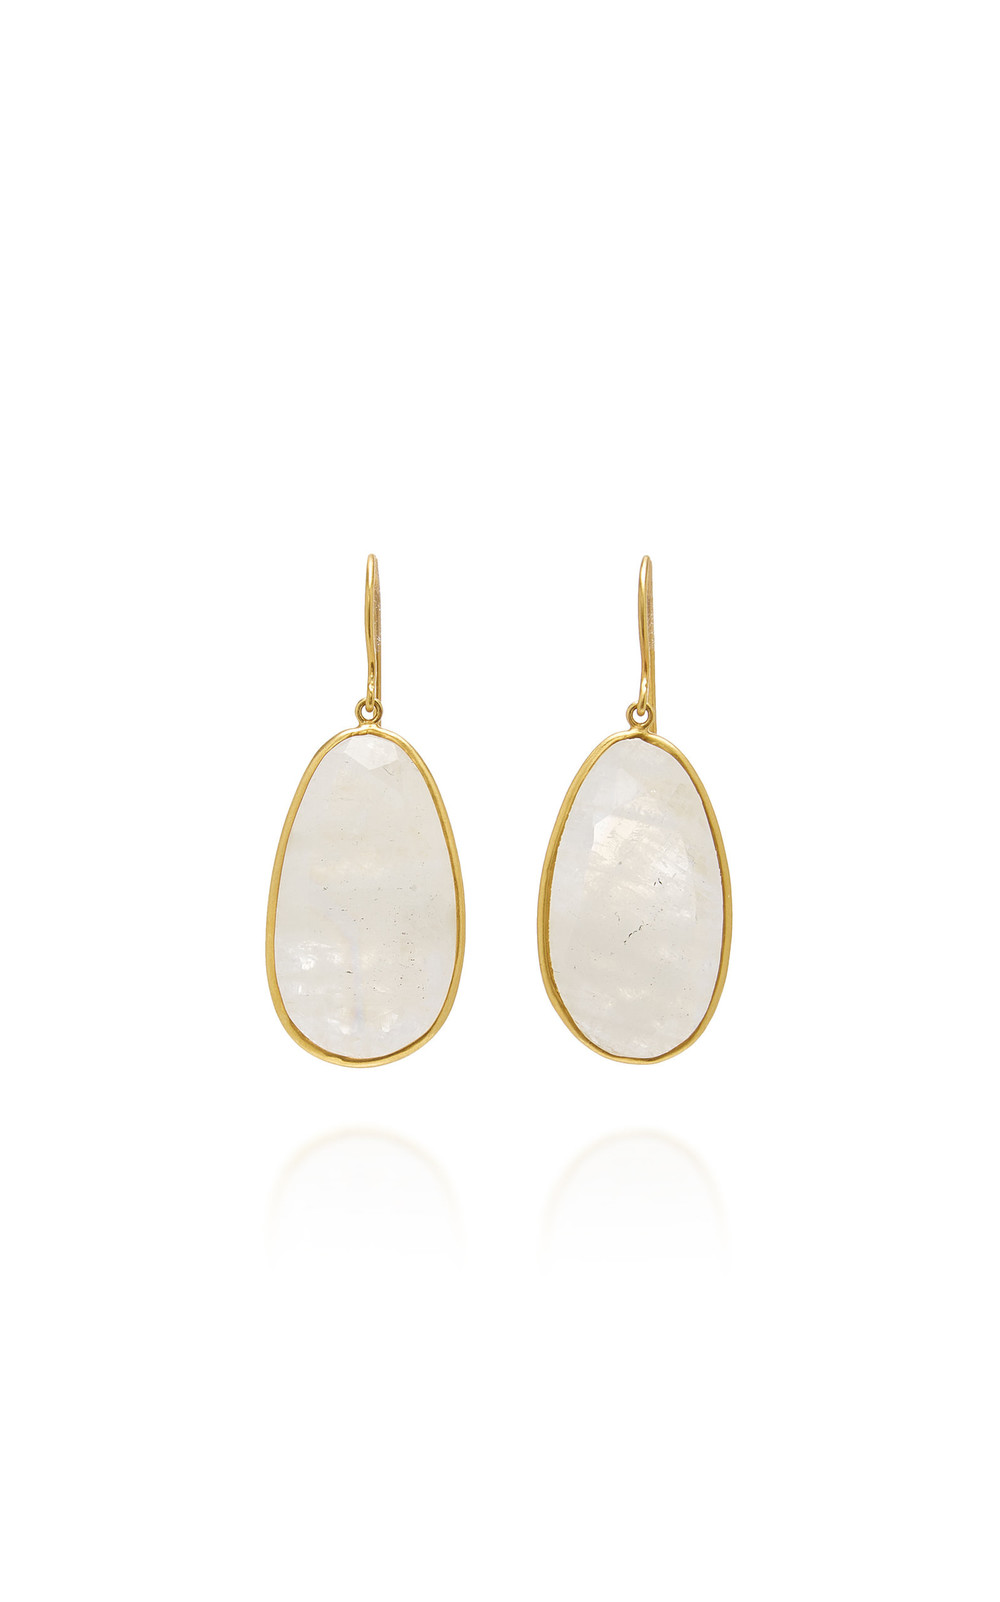 Pippa Small First Frost Medium Single Drop Earrings In Rainbow Moonstone in white